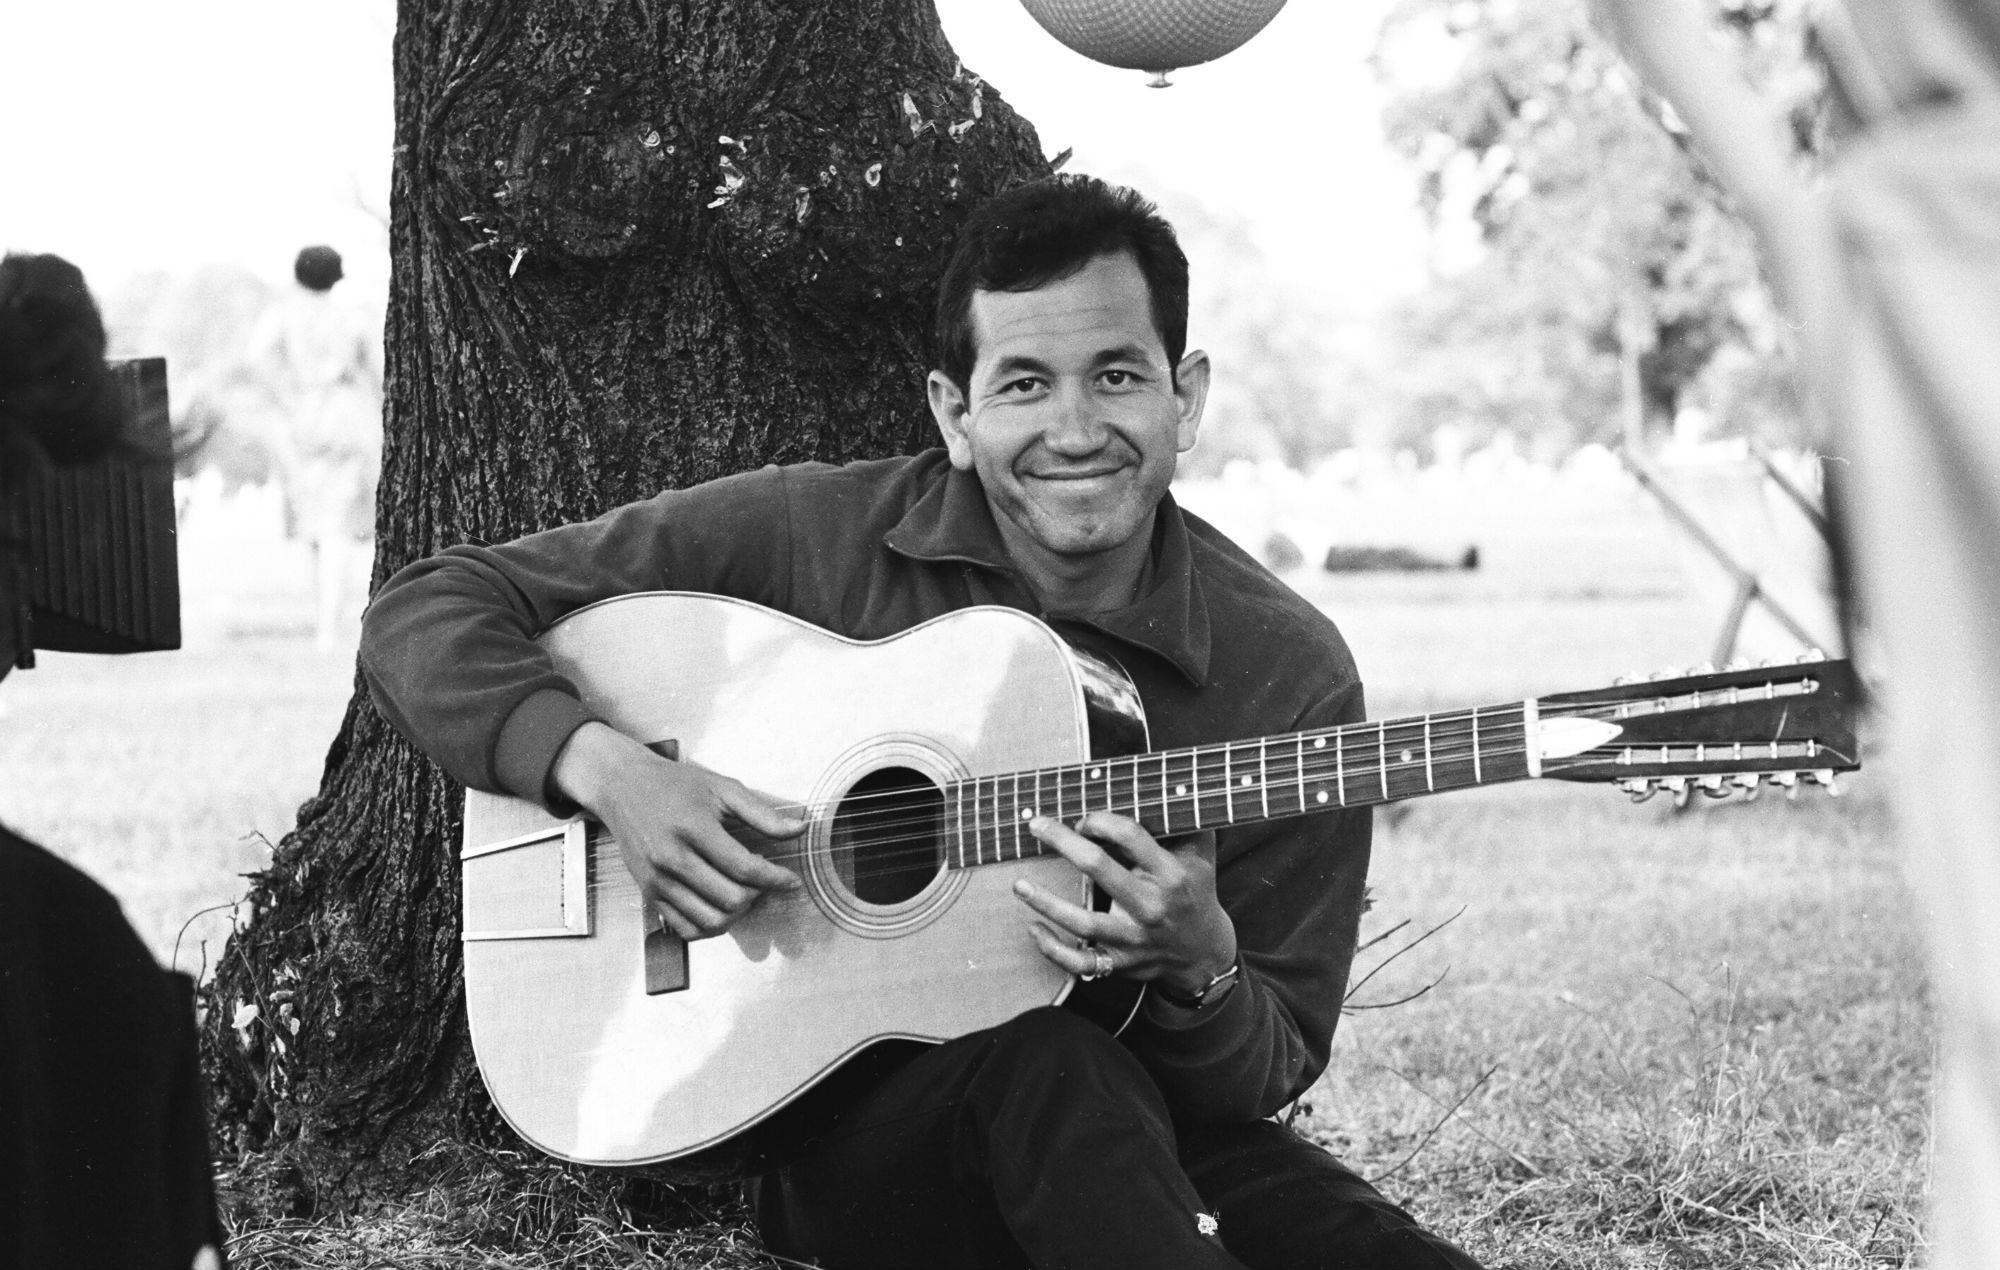 'If I Had A Hammer' singer Trini Lopez dies from COVID-19